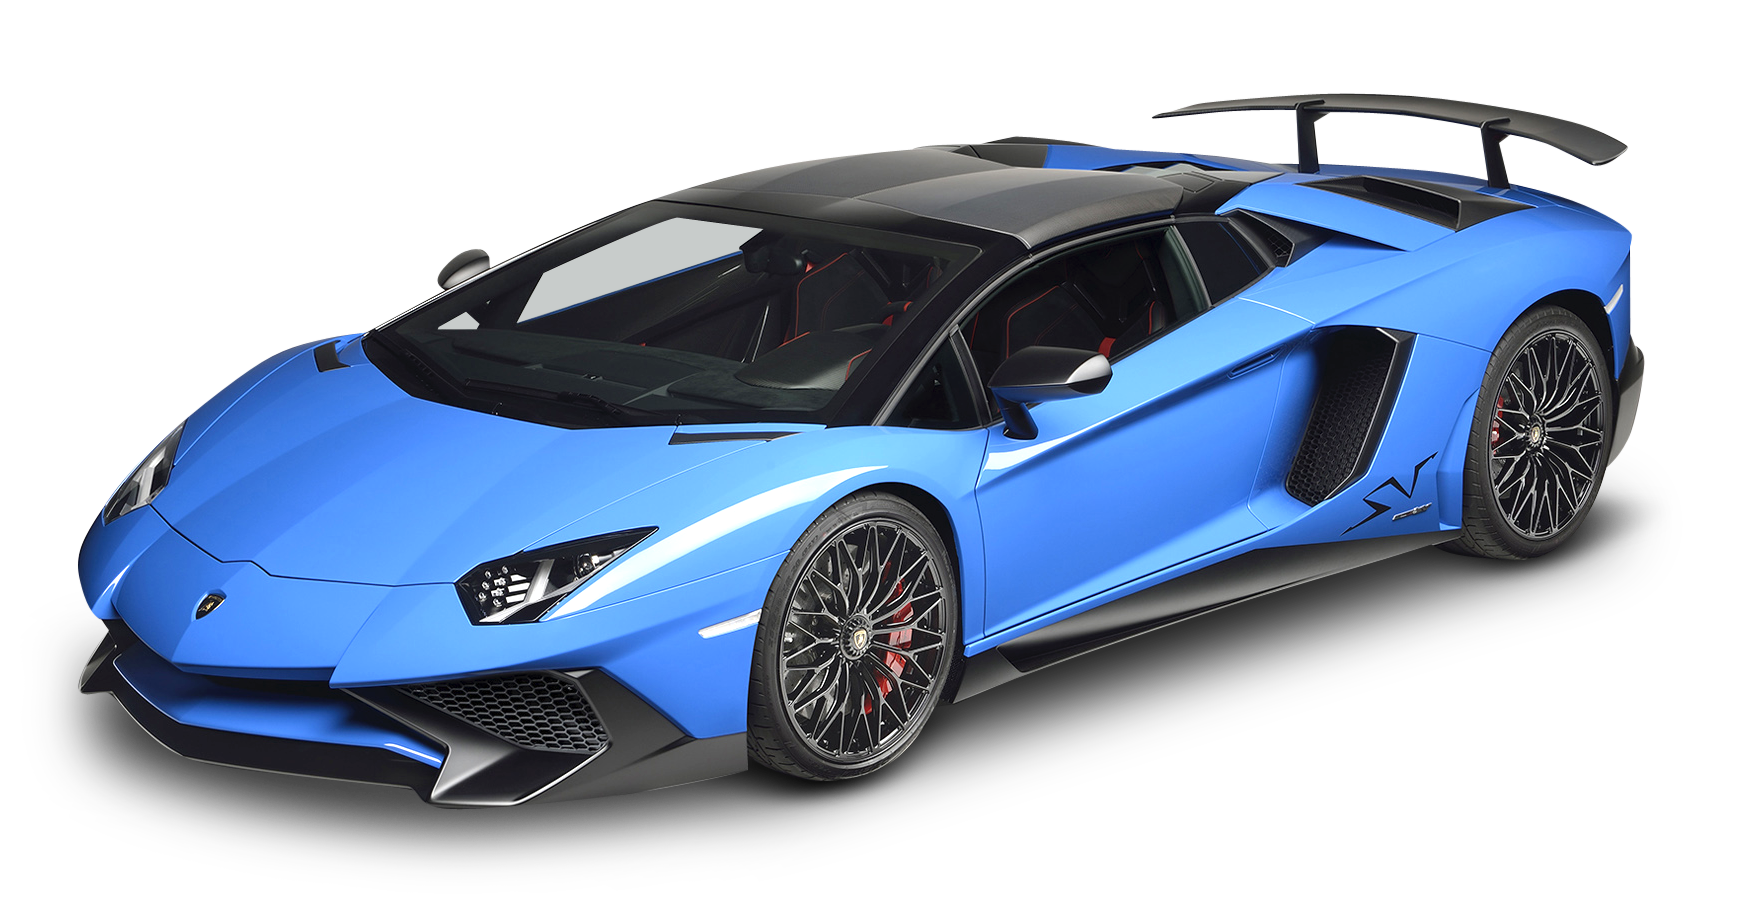 blue lamborghini aventador car png image purepng free transparent cc0 png image library. Black Bedroom Furniture Sets. Home Design Ideas